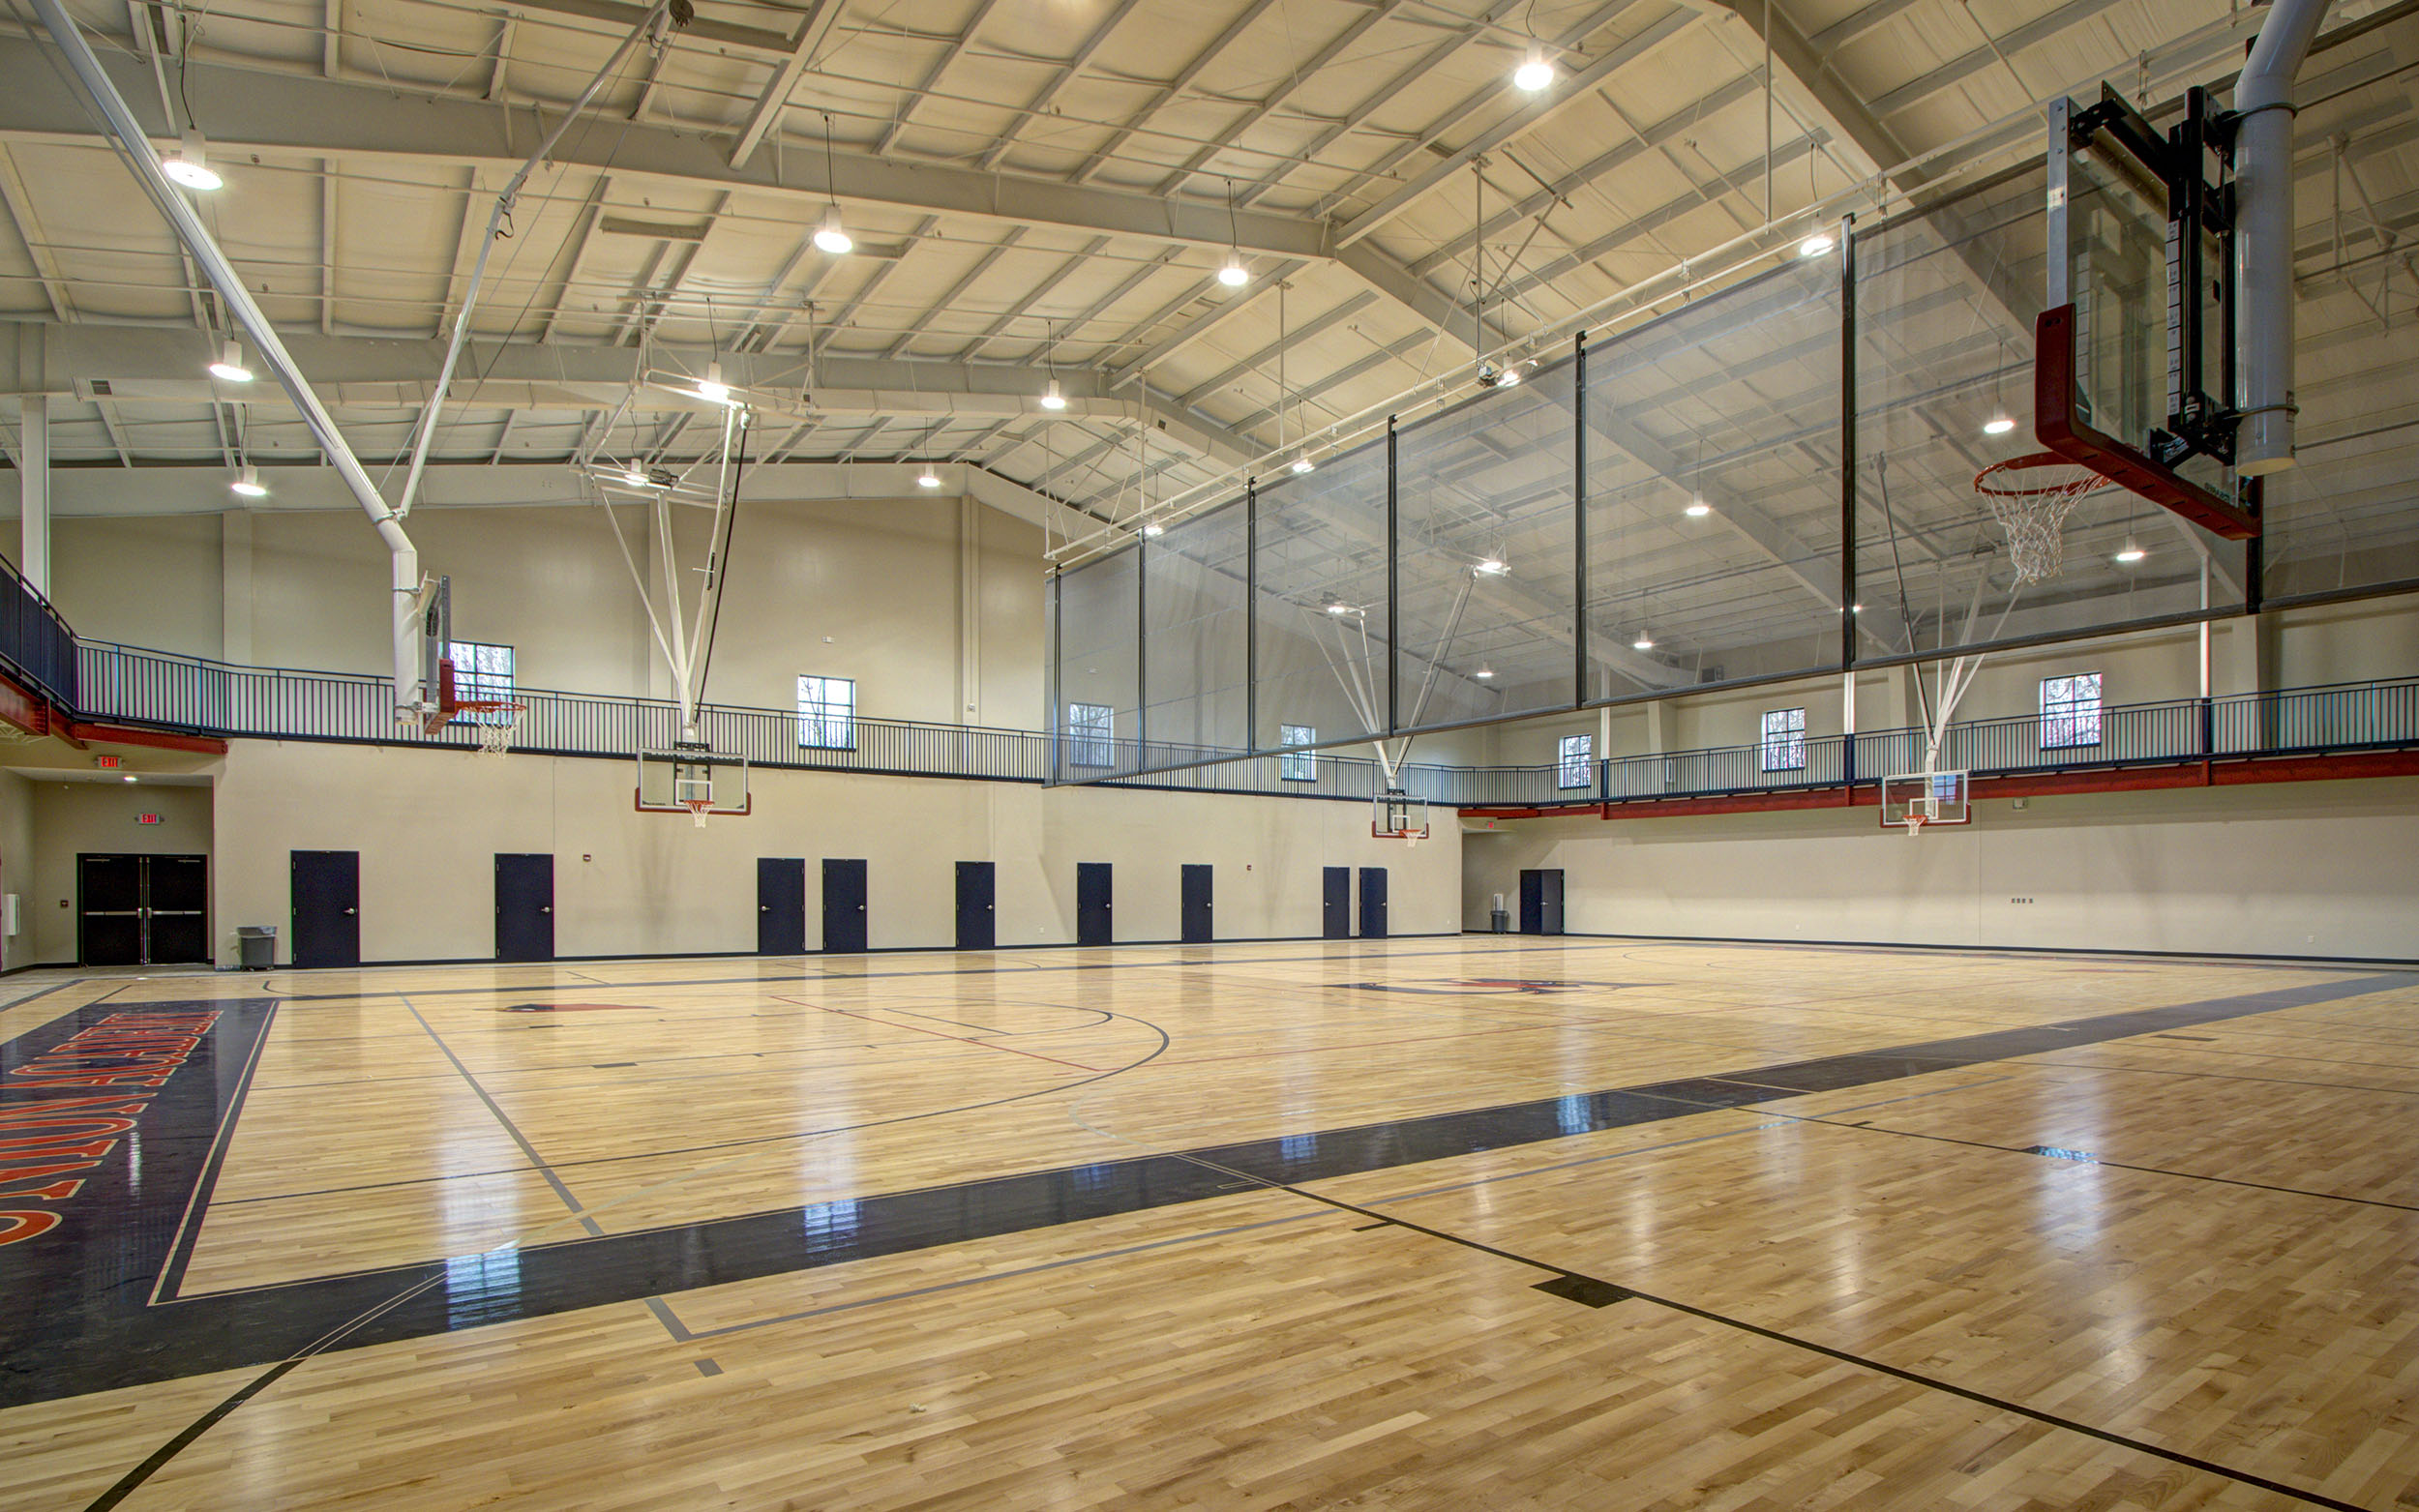 Union Academy Athletic Center